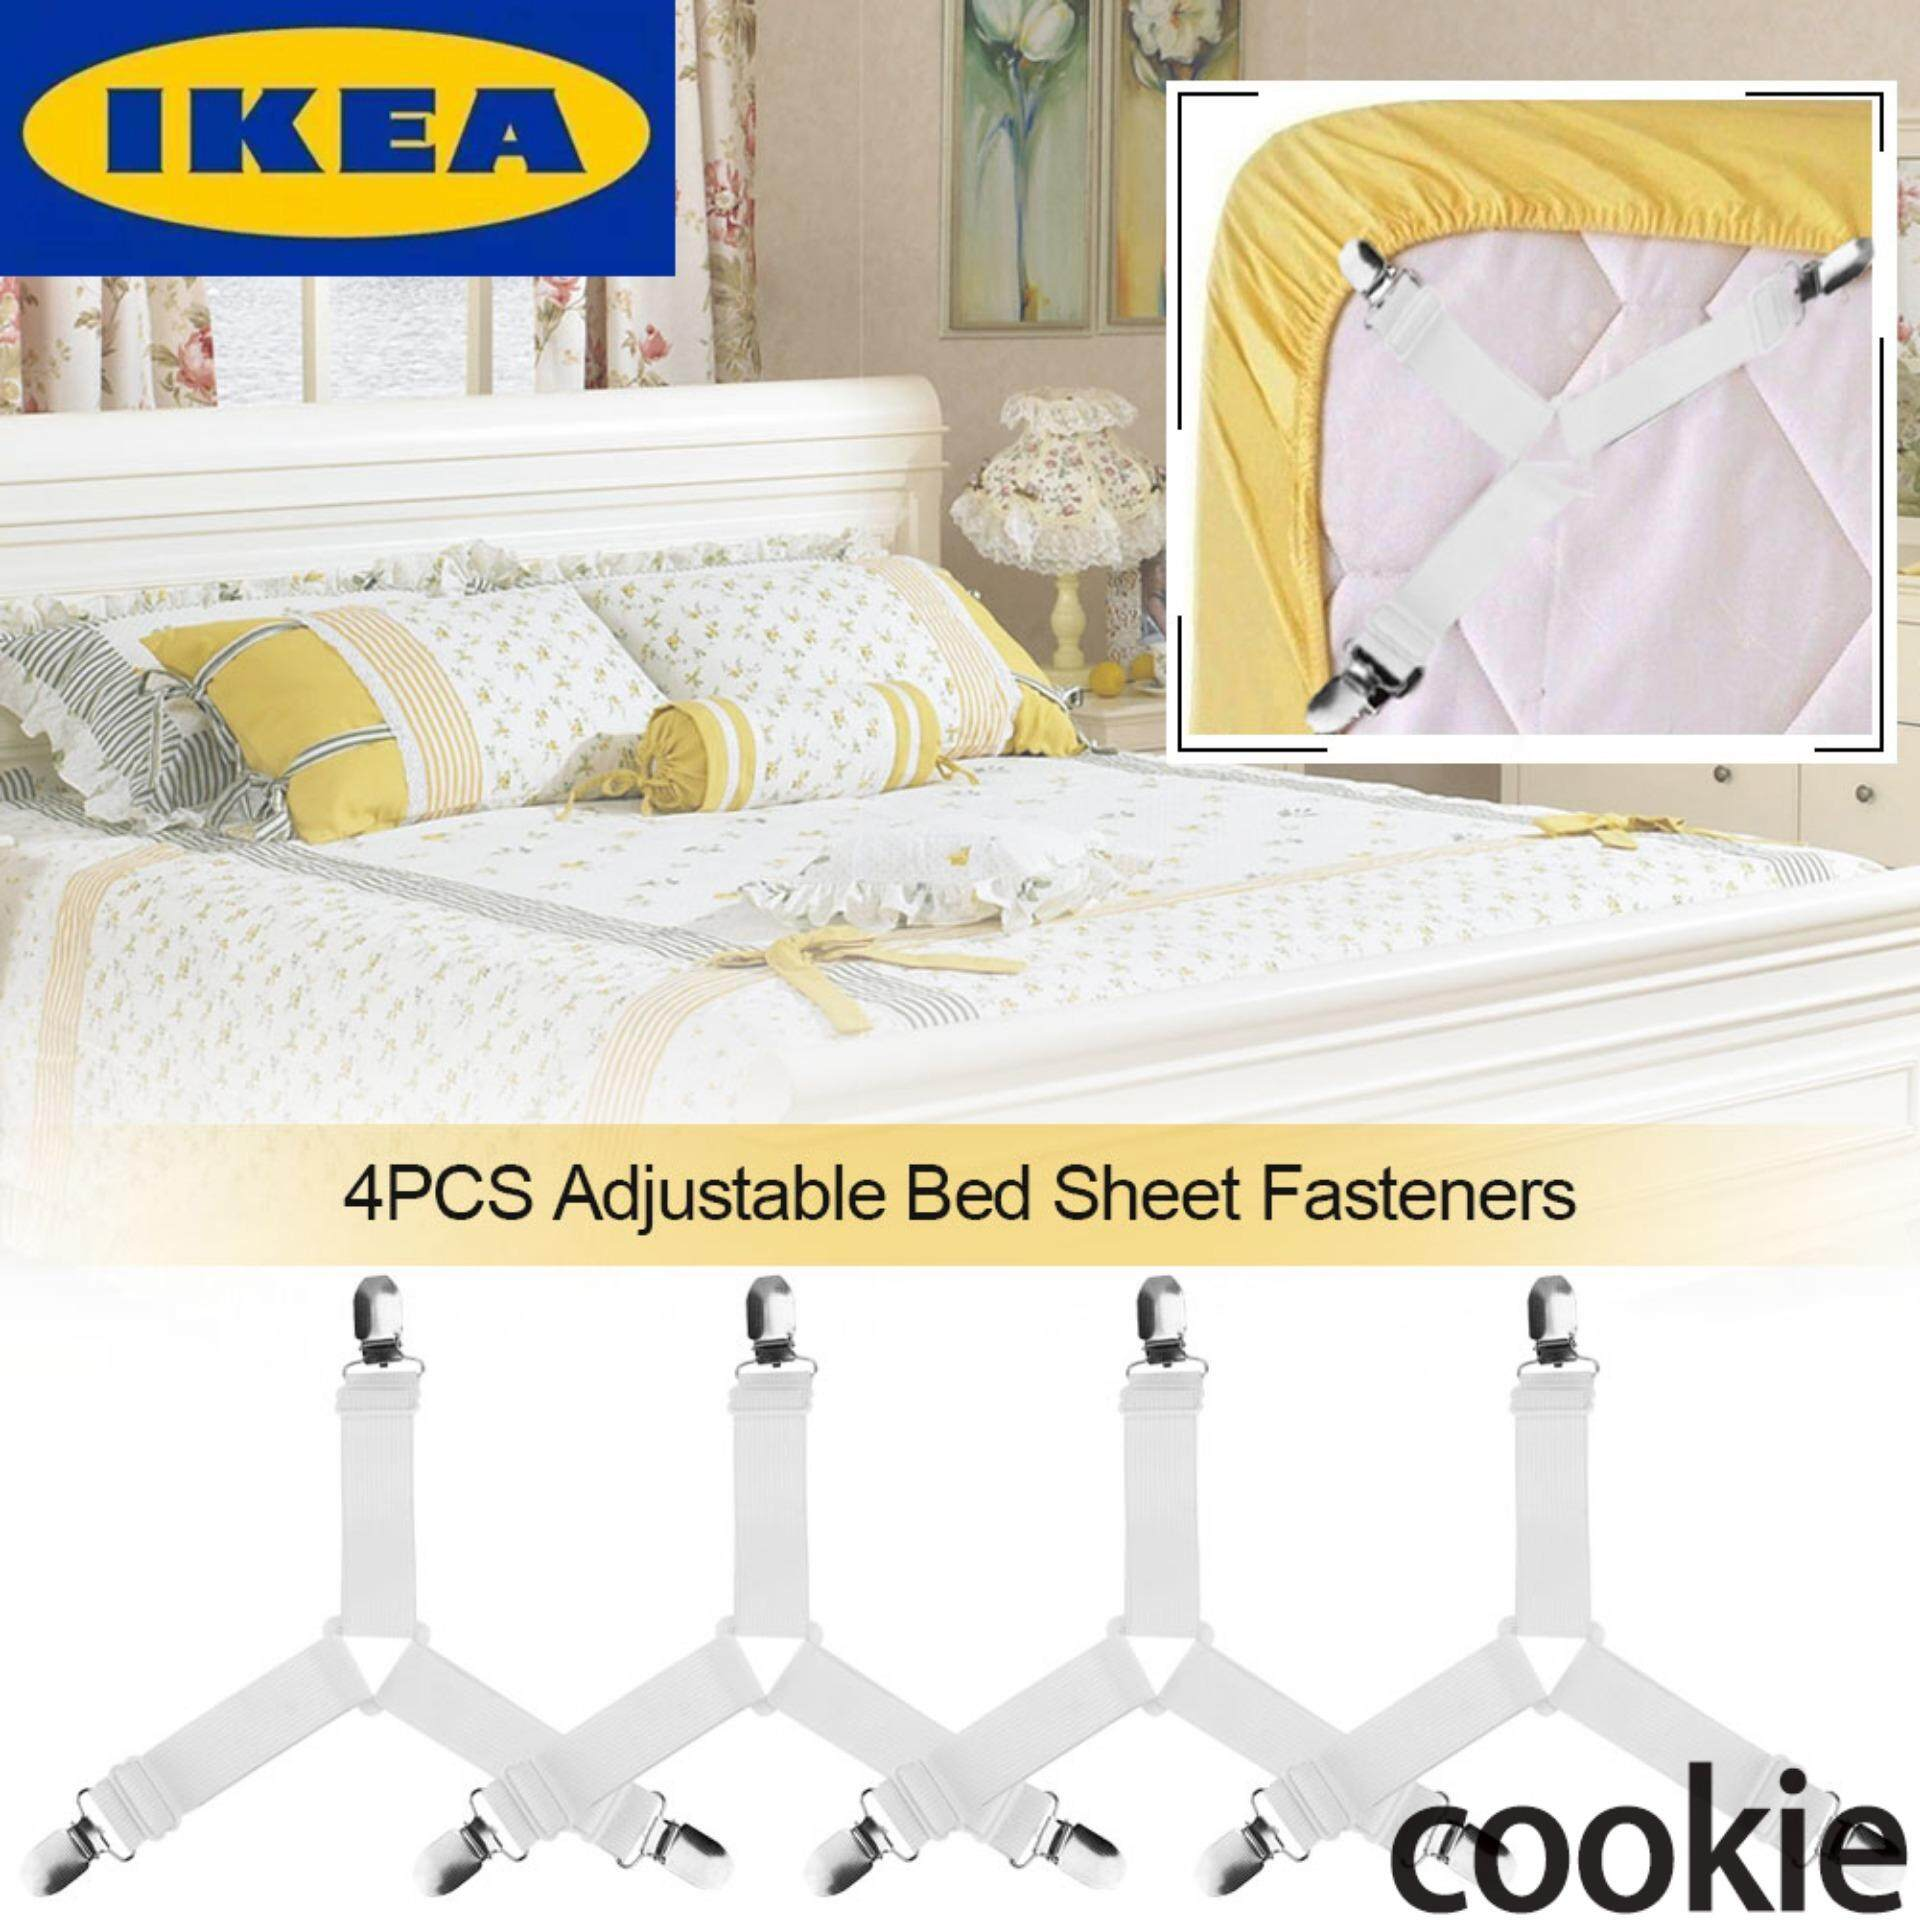 IKEA 4pcs Adjustable Triangle Bed Mattress Sheet Holder Straps Clips  Grippers Fasteners Elastic Straps Fasteners Holders